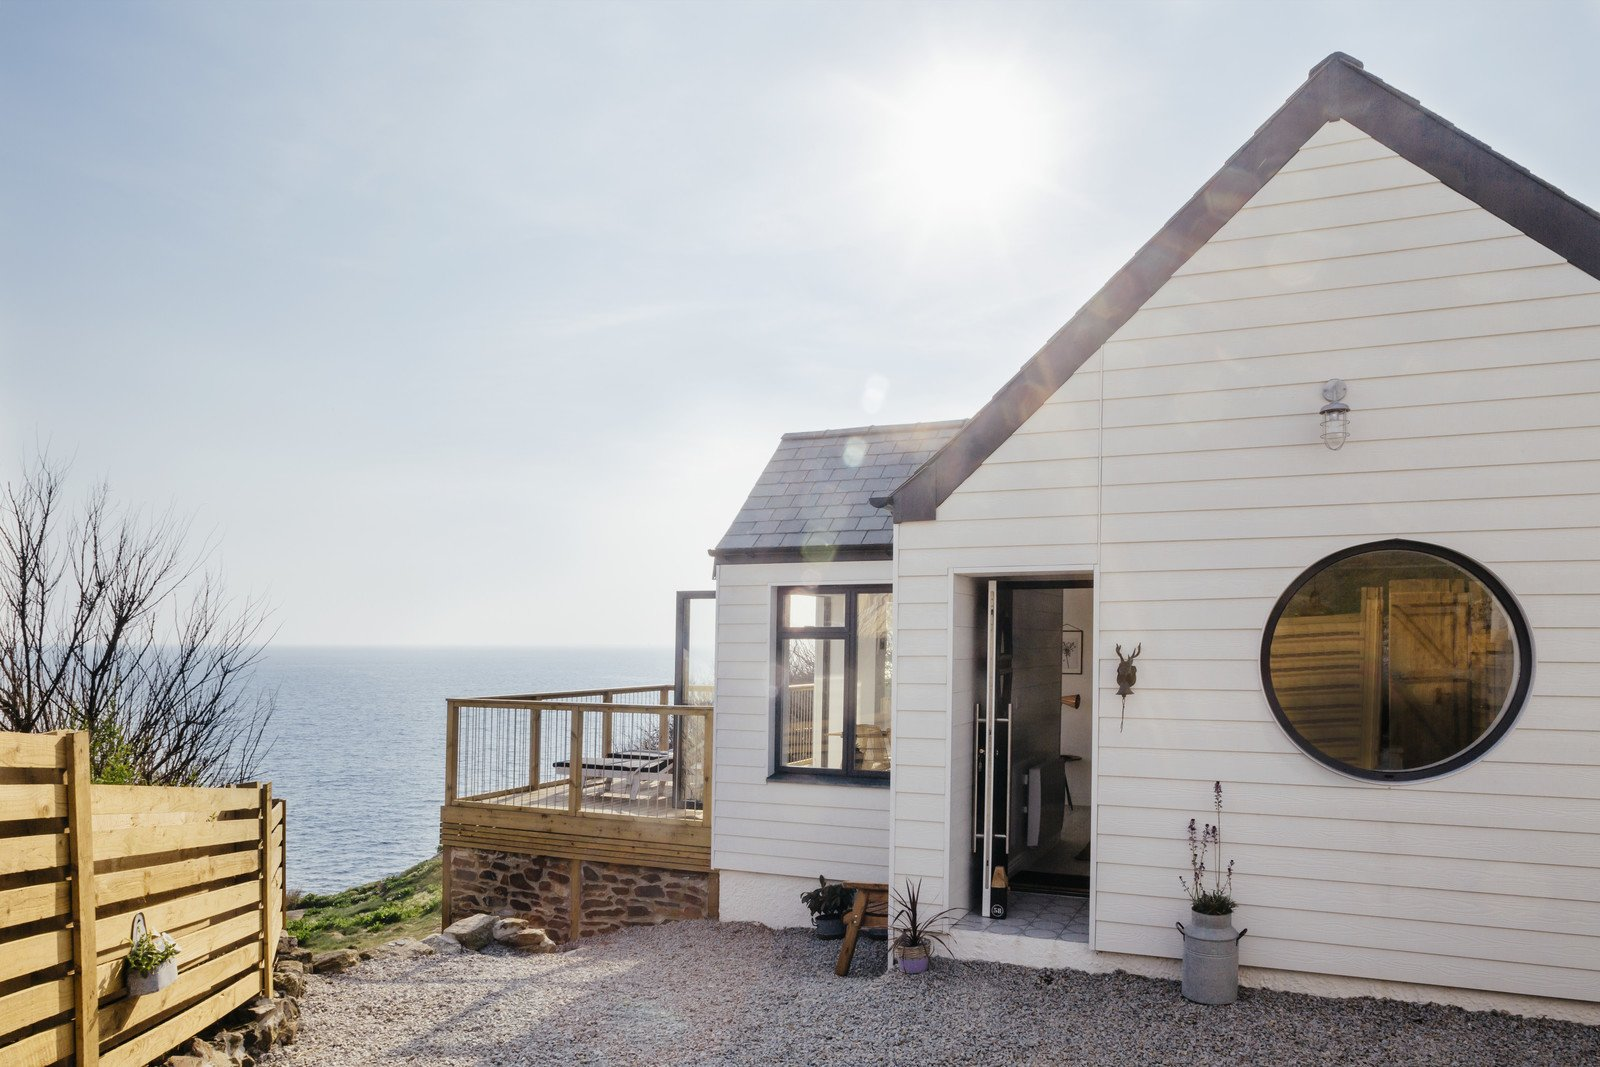 Photo 1 of 15 in Escape For a Weekend Away at One of These Cornish Retreats That Fuse Old and New